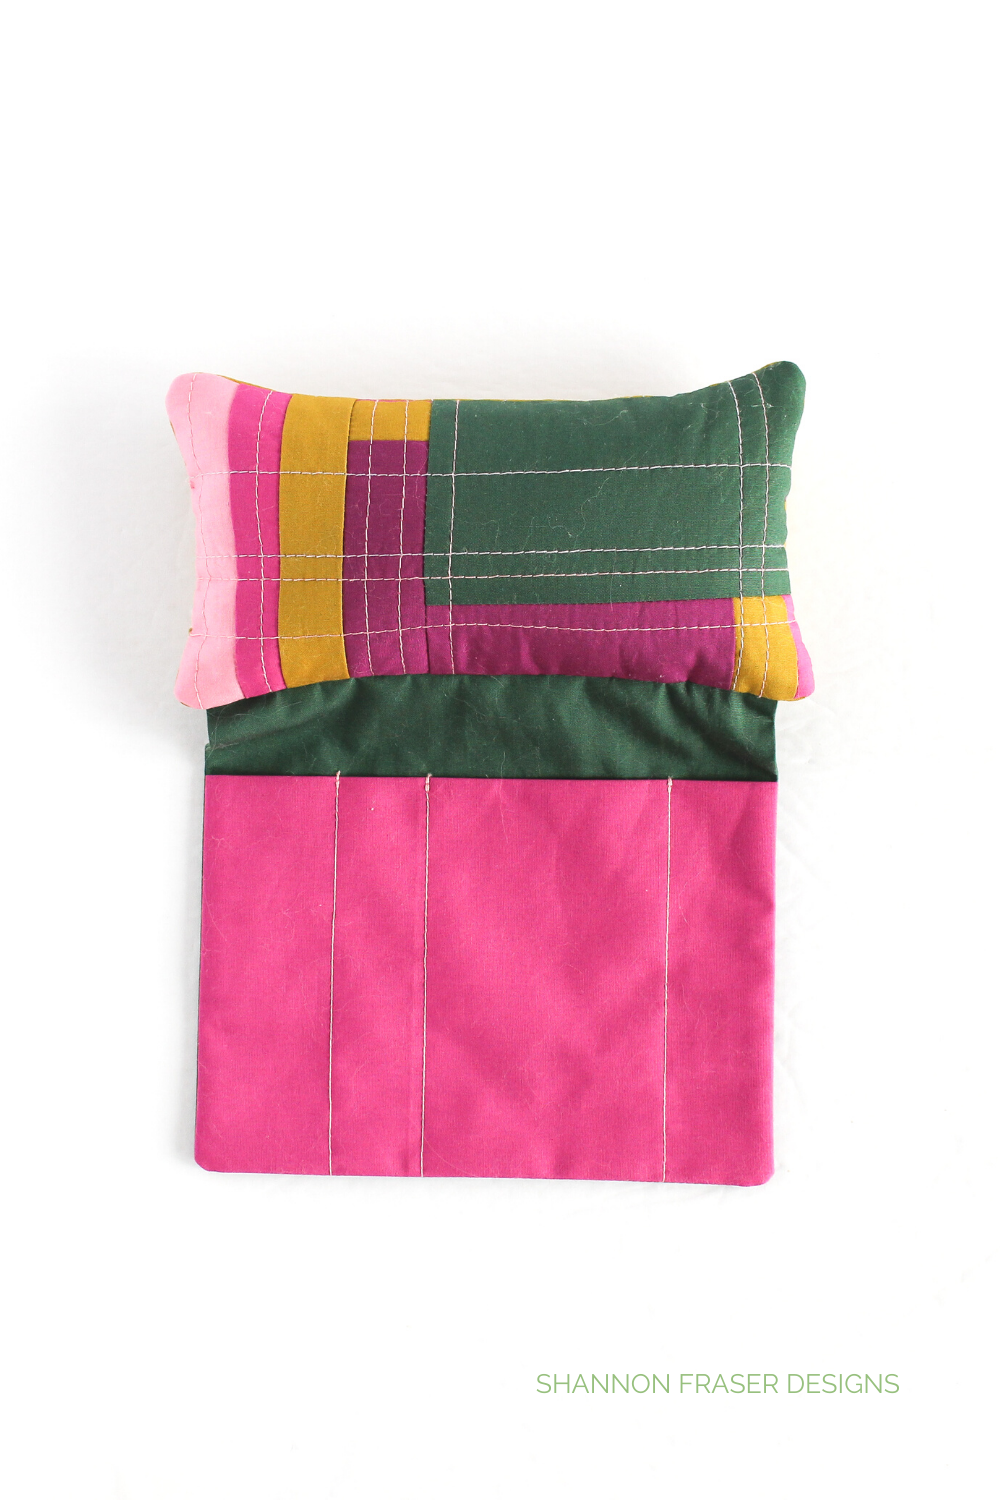 Sit 'n Sew Pincushion - AGF Pure Solids one! Pincushions are a great way to try improv quilting with your fabric scraps. Grab some solids and start piecing! | Shannon Fraser Designs #modernpincushion